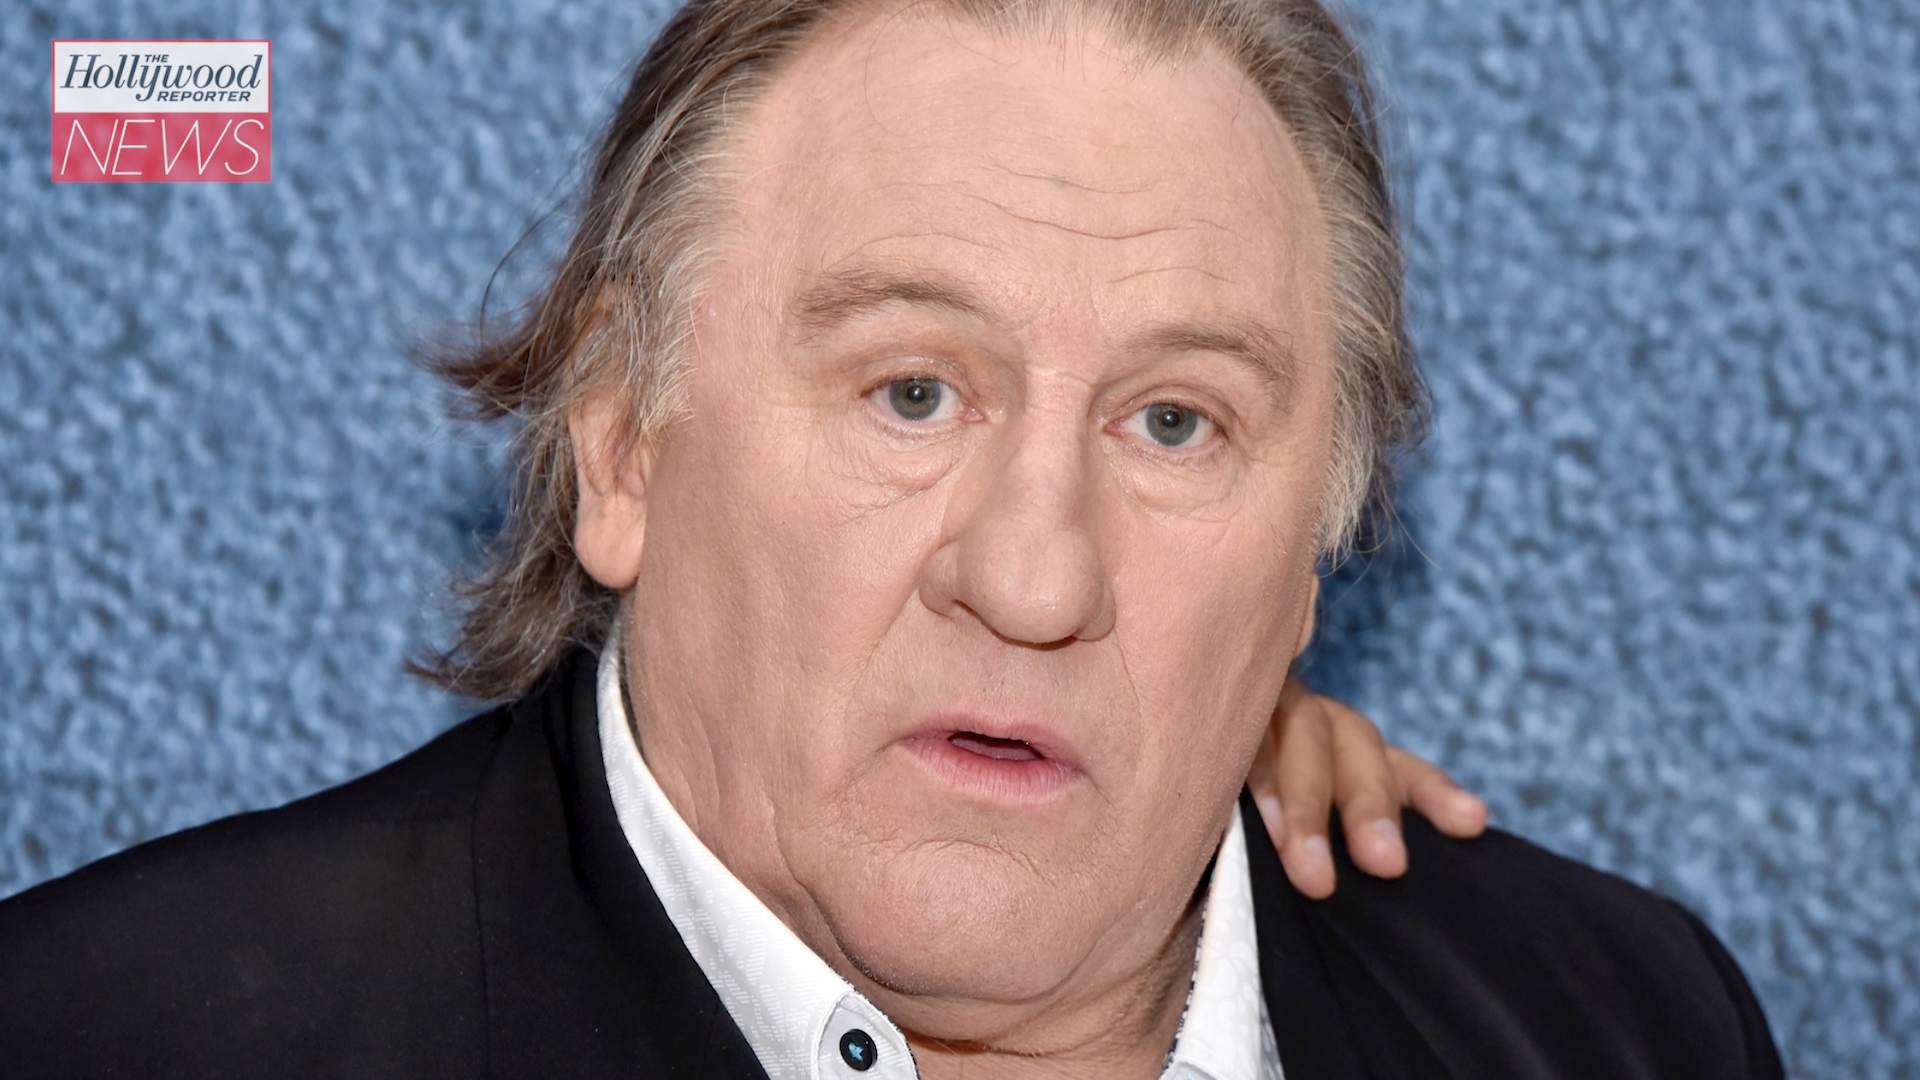 Gérard Depardieu Denies Allegations of Rape | THR News